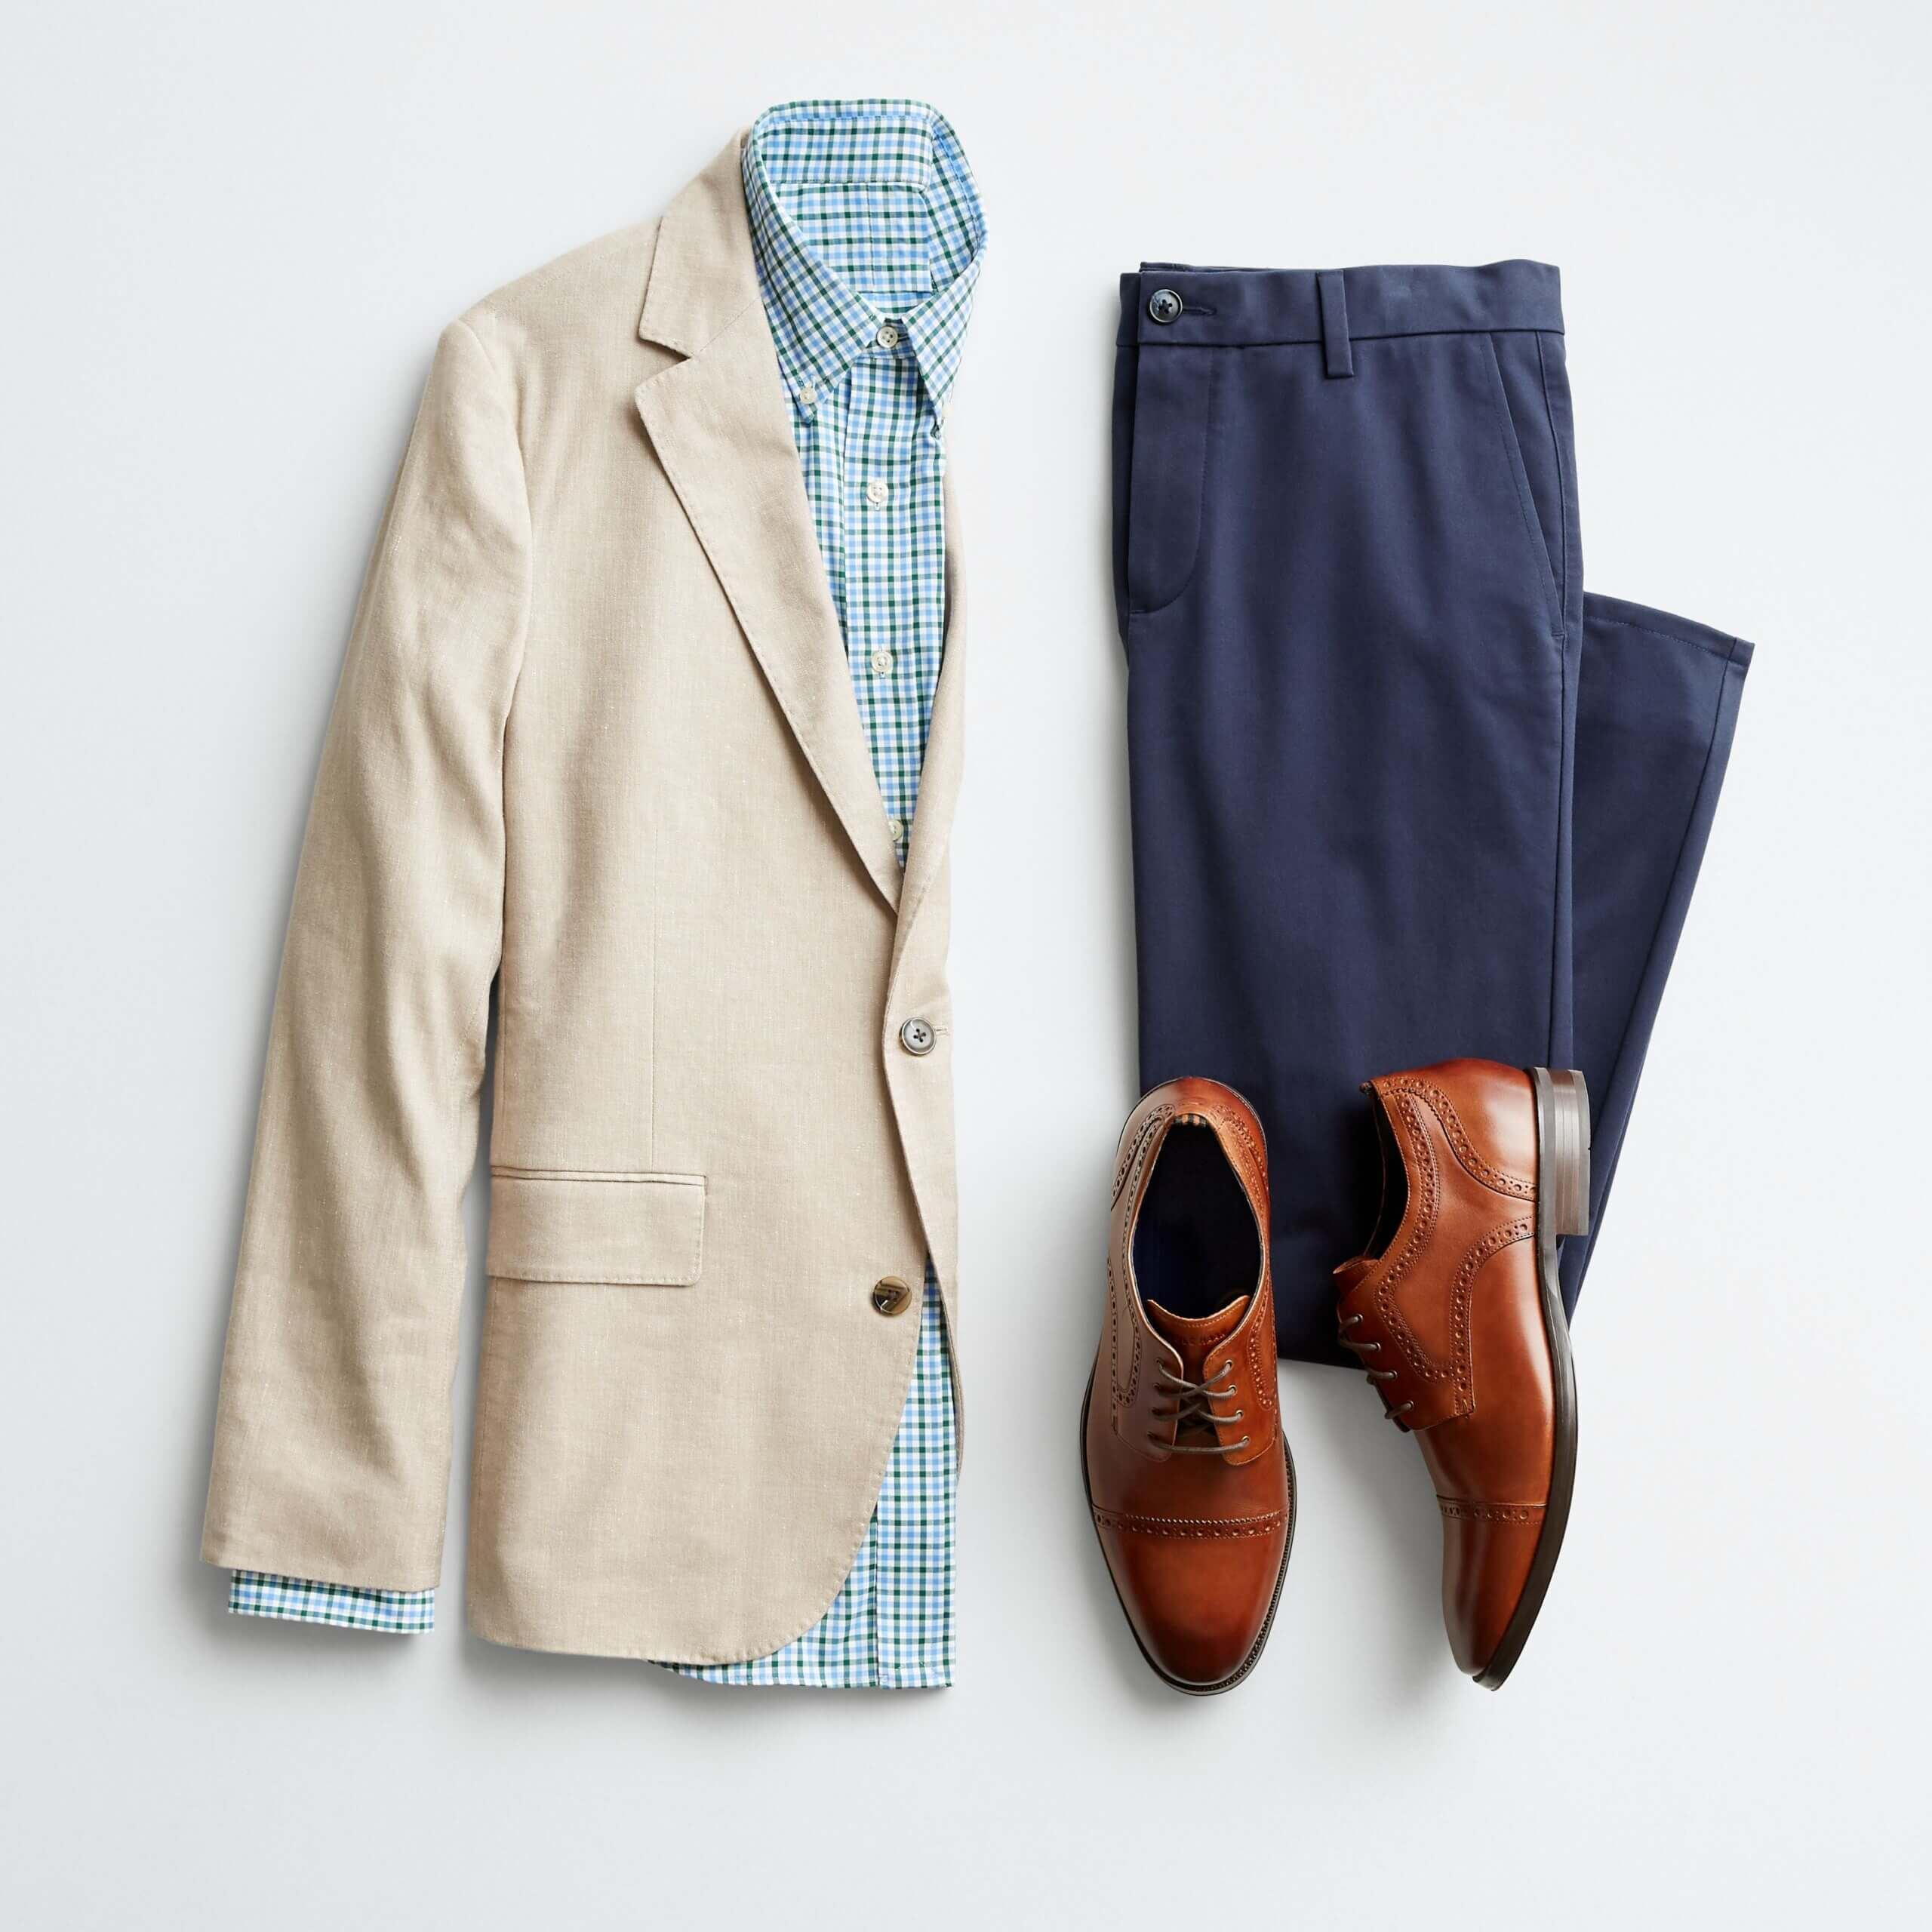 Stitch Fix men's outfit laydown featuring navy trousers, blue button-up, khaki blazer and cognac shoes.